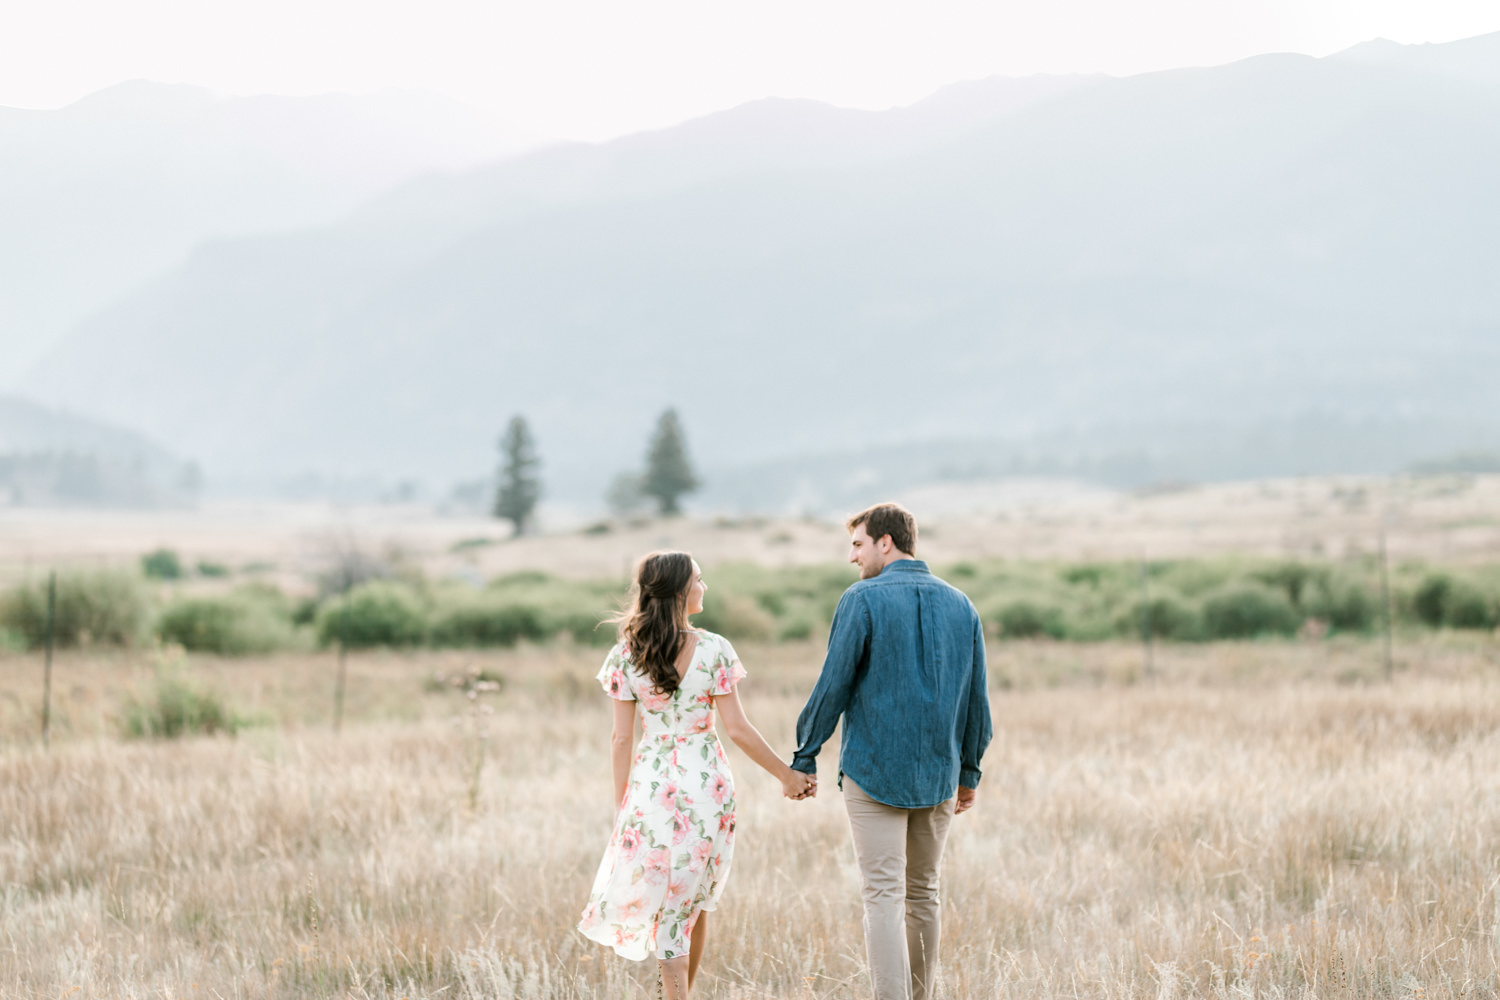 Lanae and Joey - Colorado Engagement Pictures 8.15.18 - Sam Areman Photo 251925